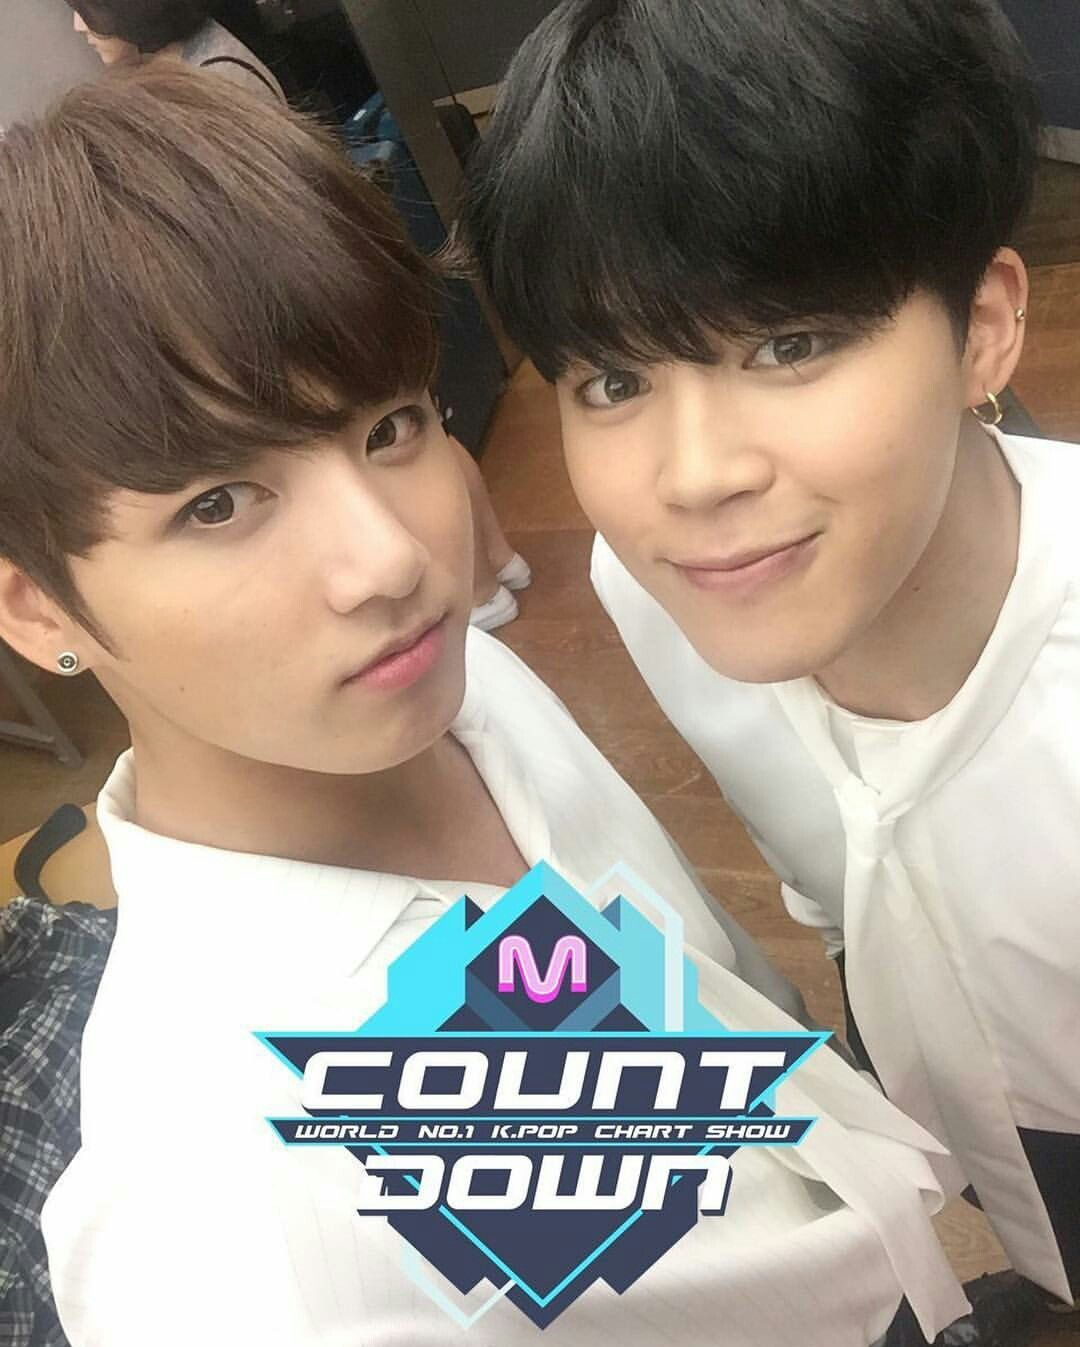 Jungkook & Jimin #comebackstage #MCOUNTDOWN #BUTTERFLY #BTS #방탄소년단